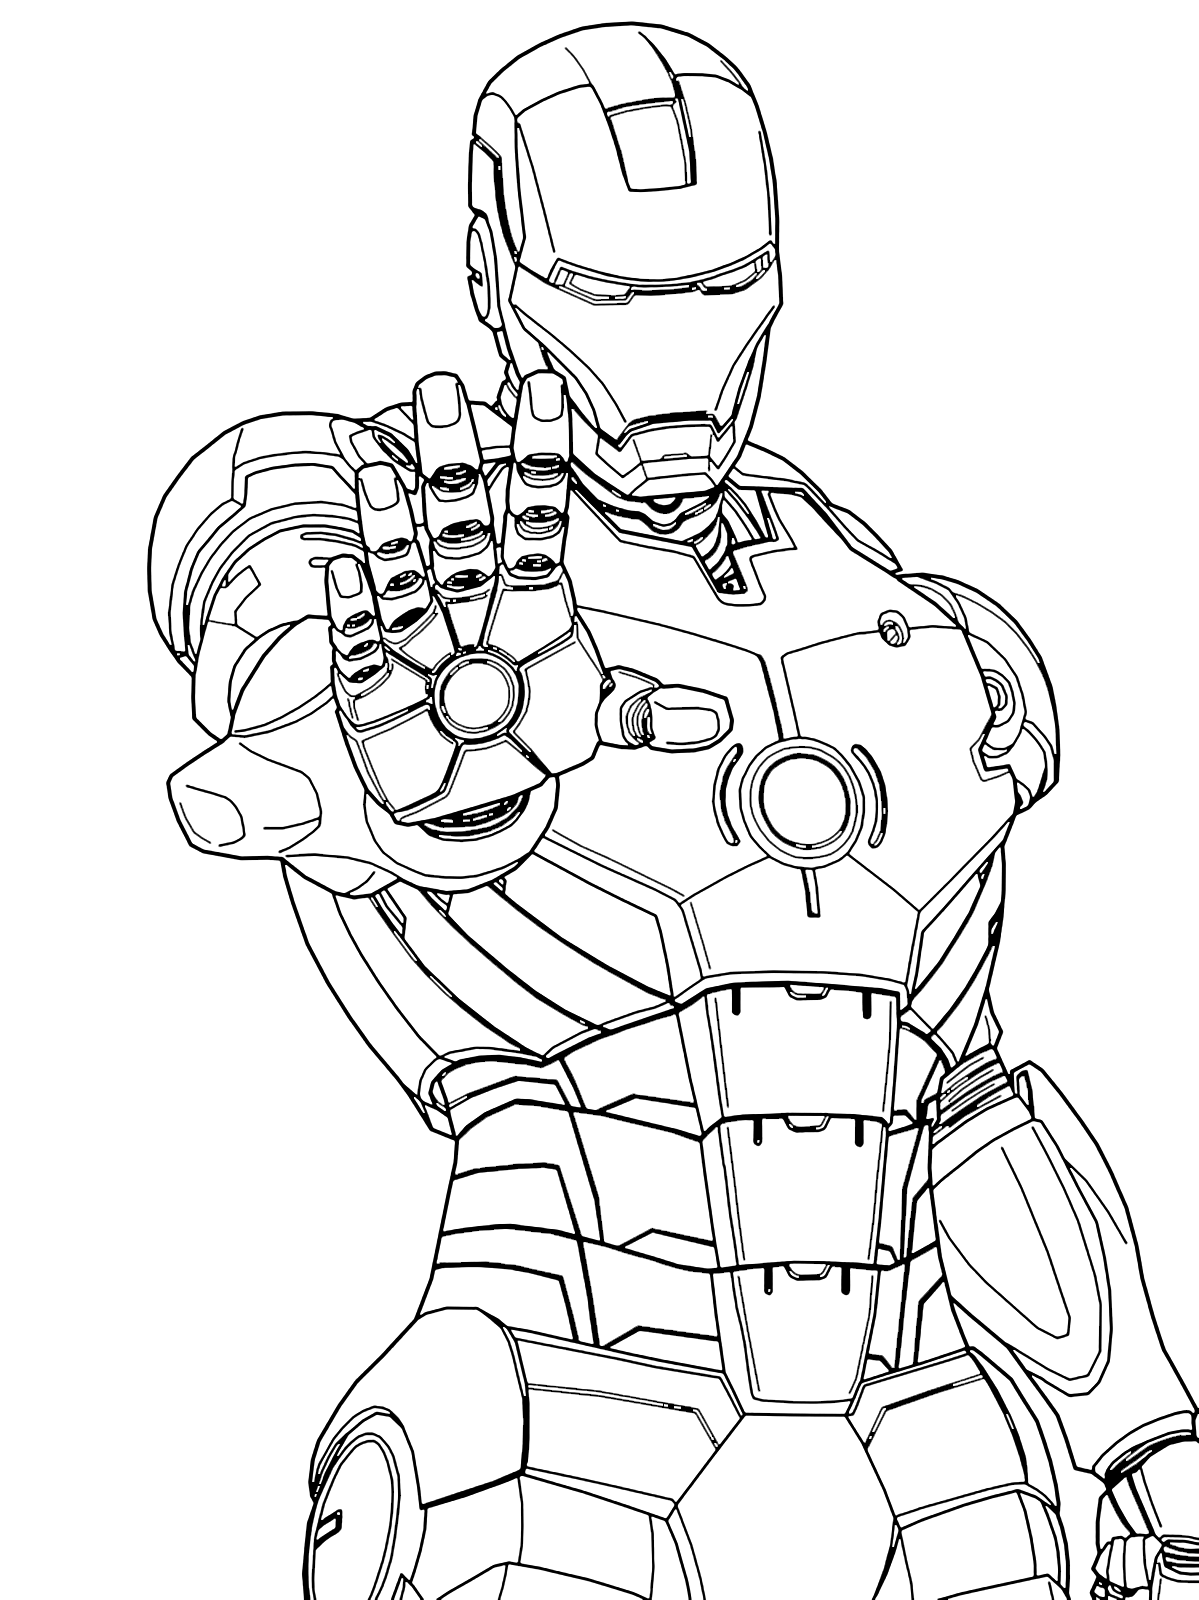 coloring iron man free printable iron man coloring pages for kids best man coloring iron